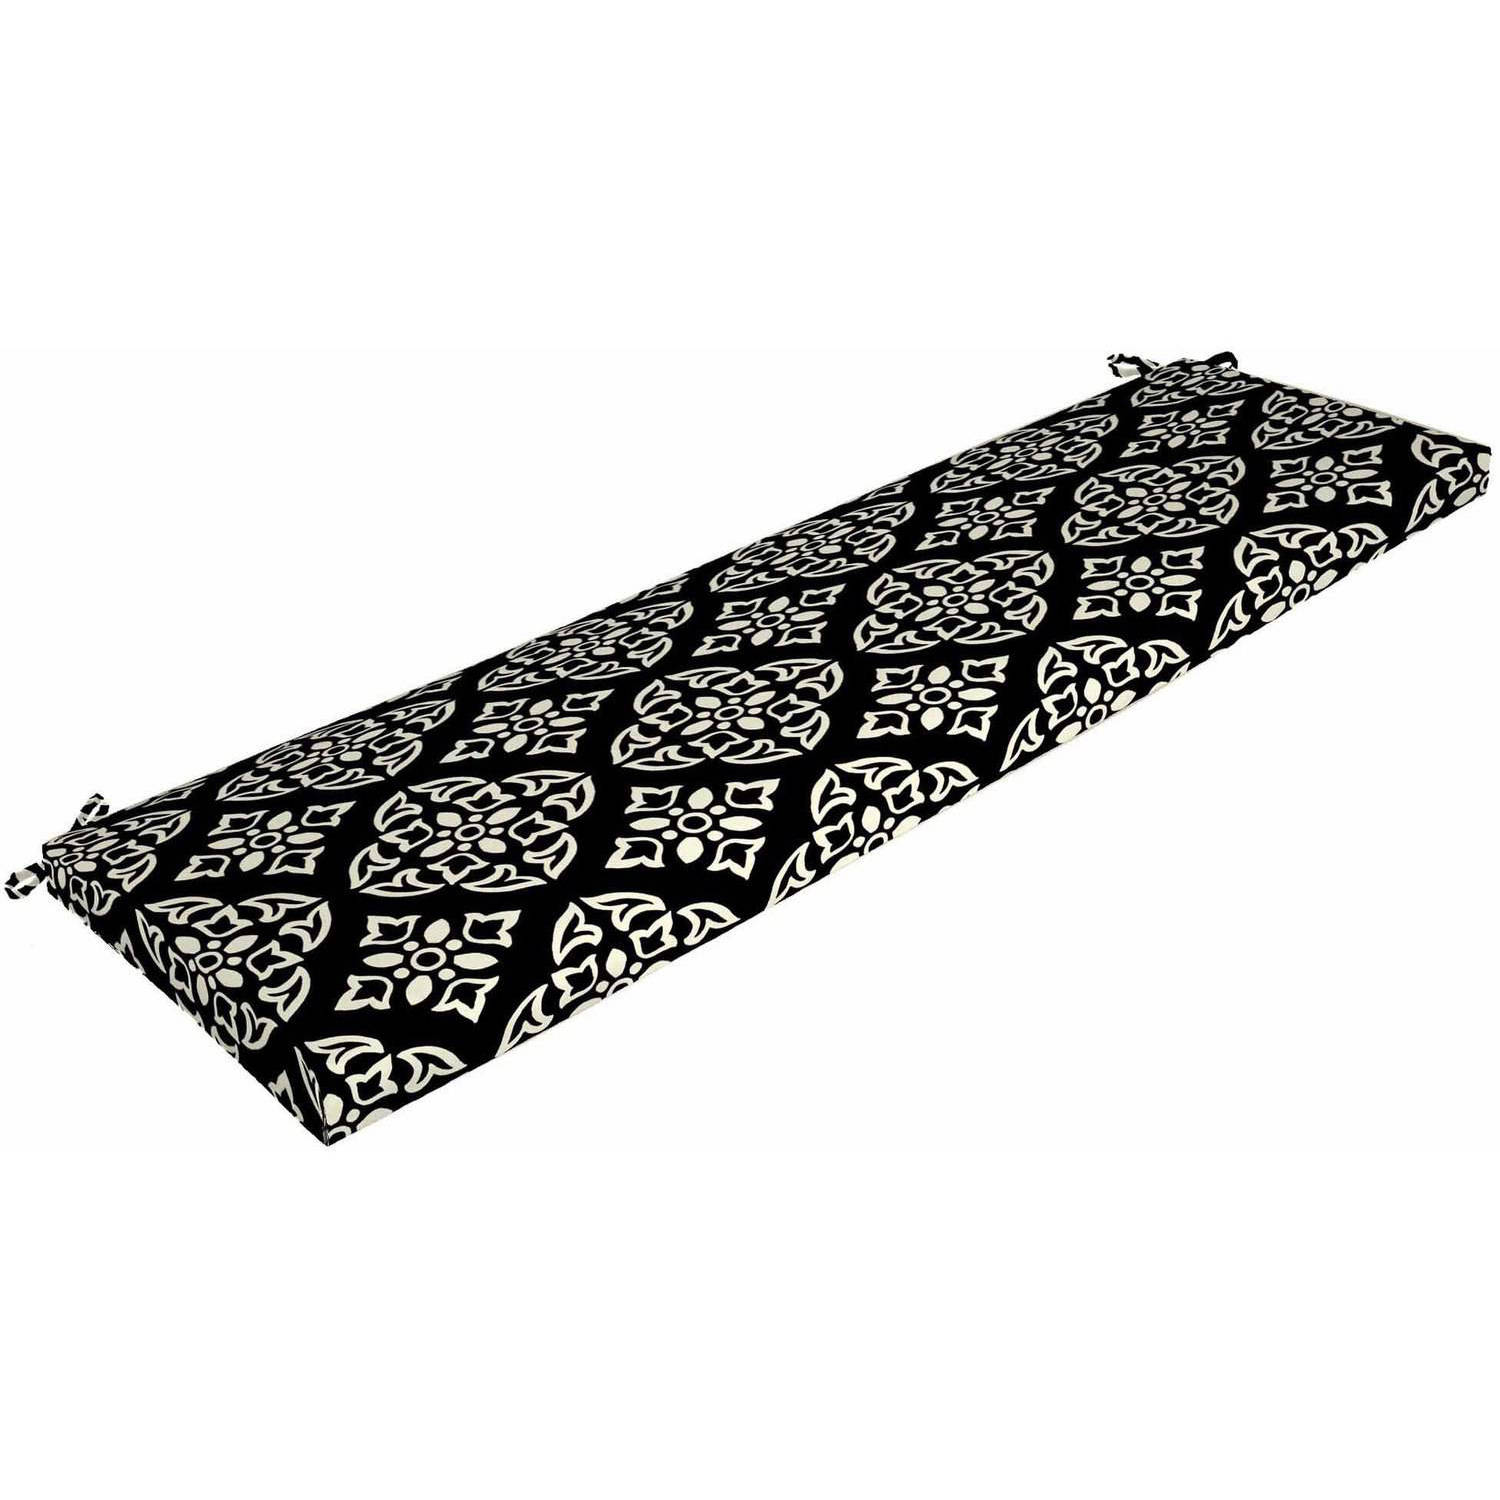 Better Homes And Gardens Outdoor Patio Bench Cushion, Black White Medallion